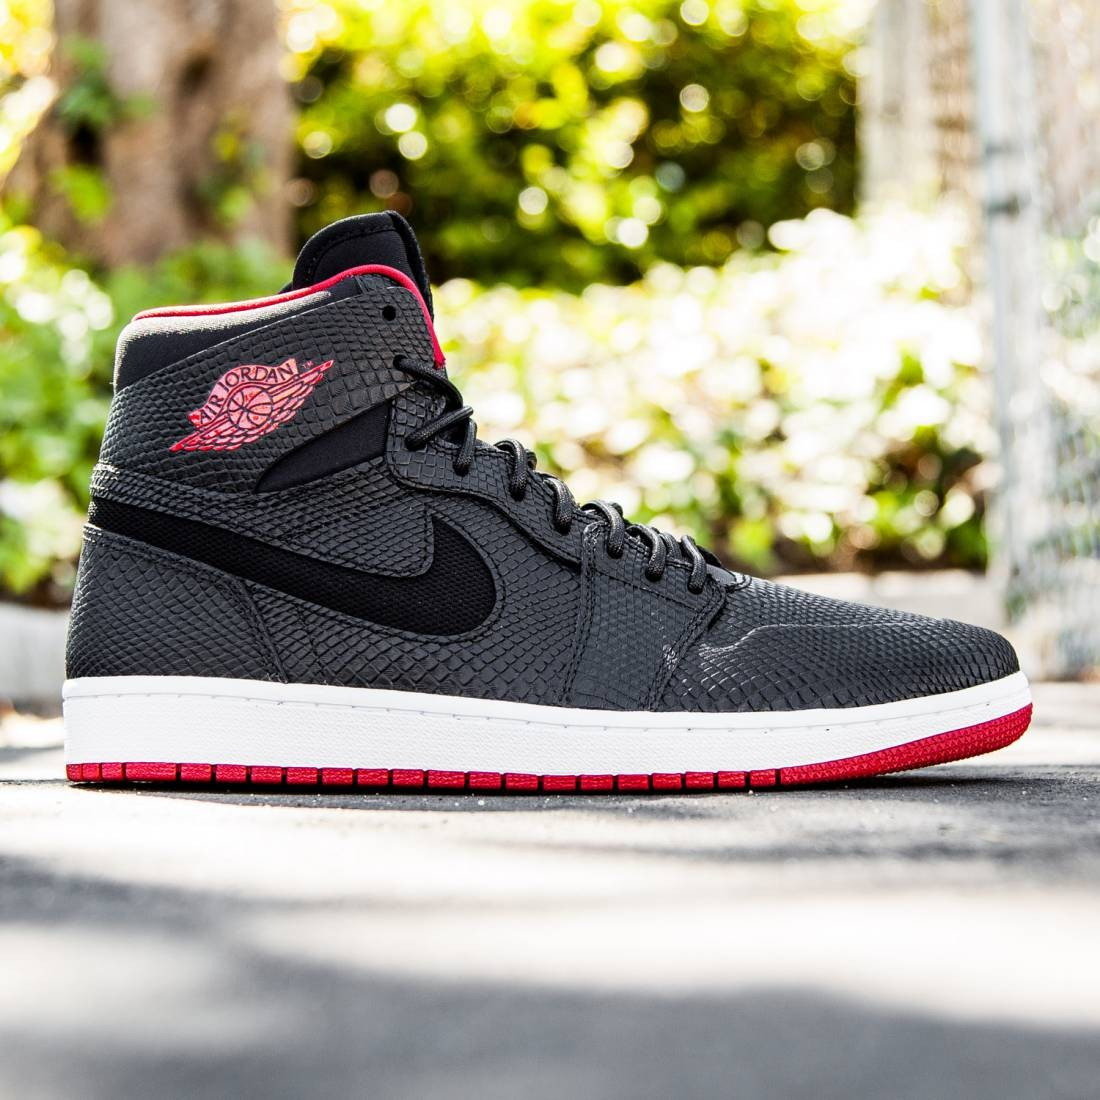 release date 61a3f d3590 Jordan Men Air Jordan 1 Retro High Nouveau (black white  gym red)